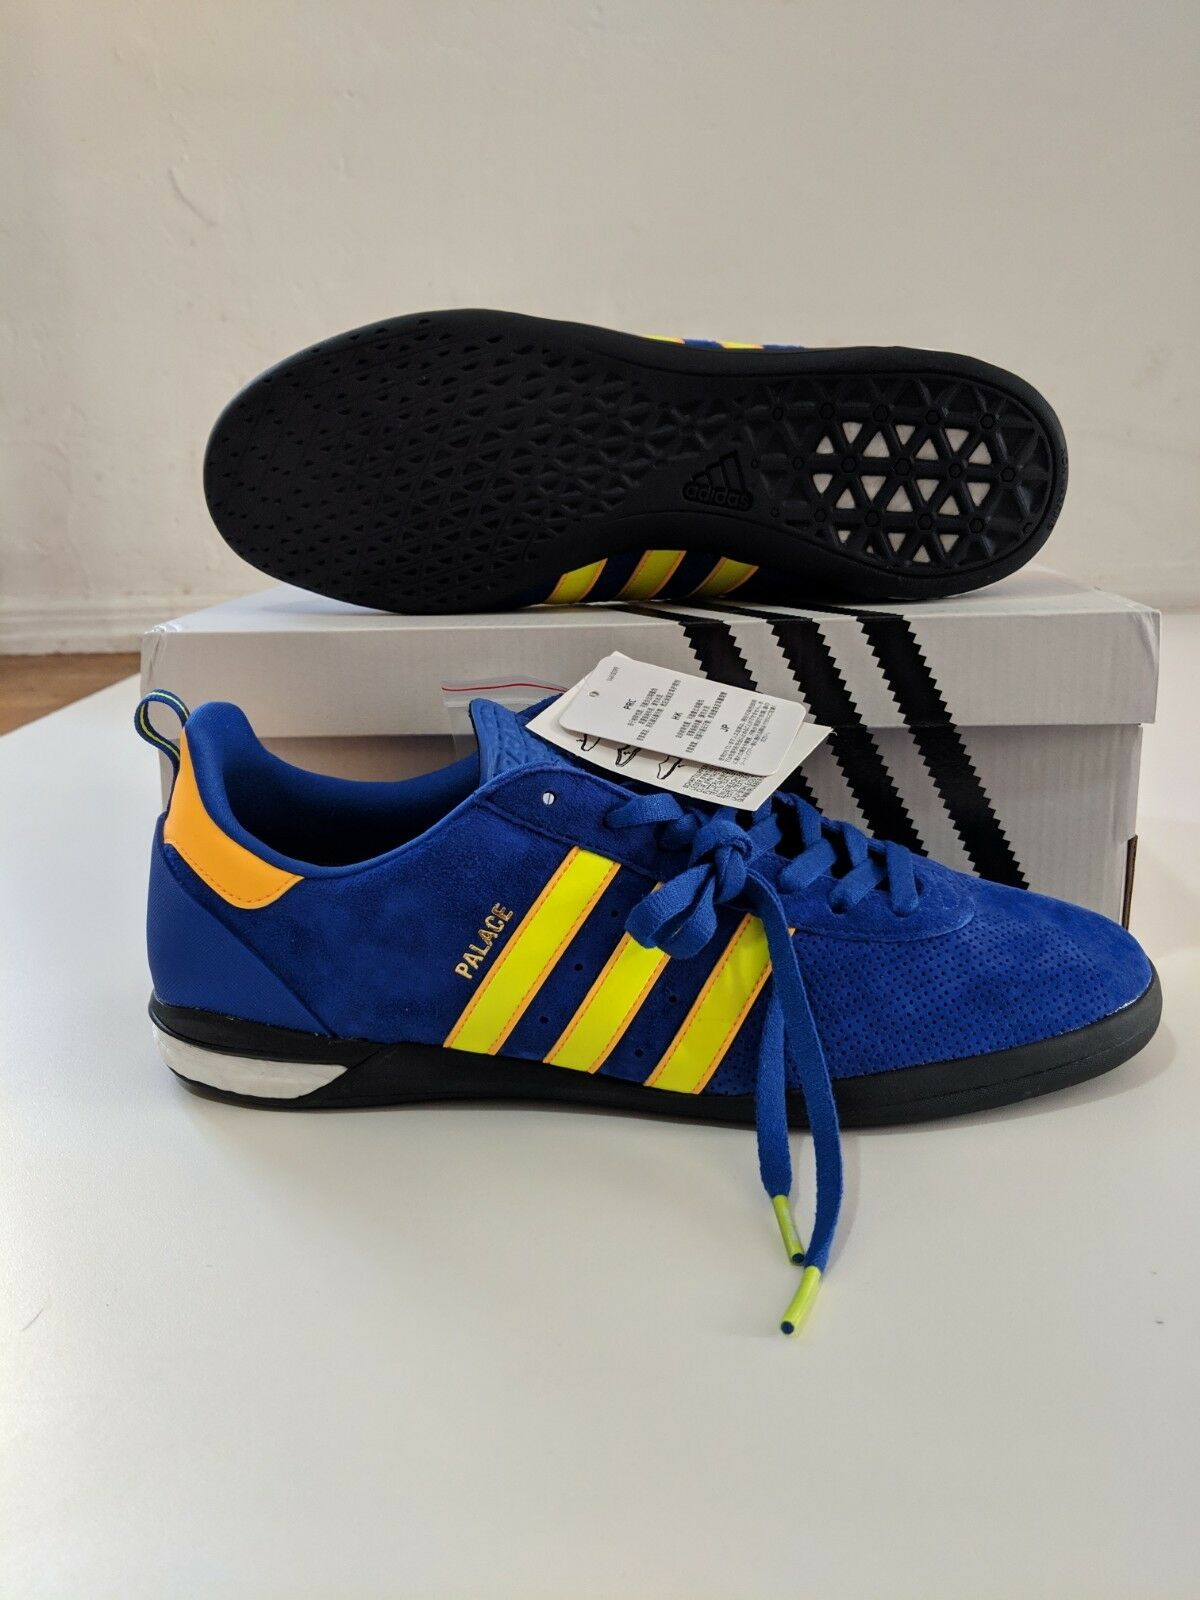 Palace x adidas Indoor Size 10.5BOLD blueE, SOLAR YELLOW & gold